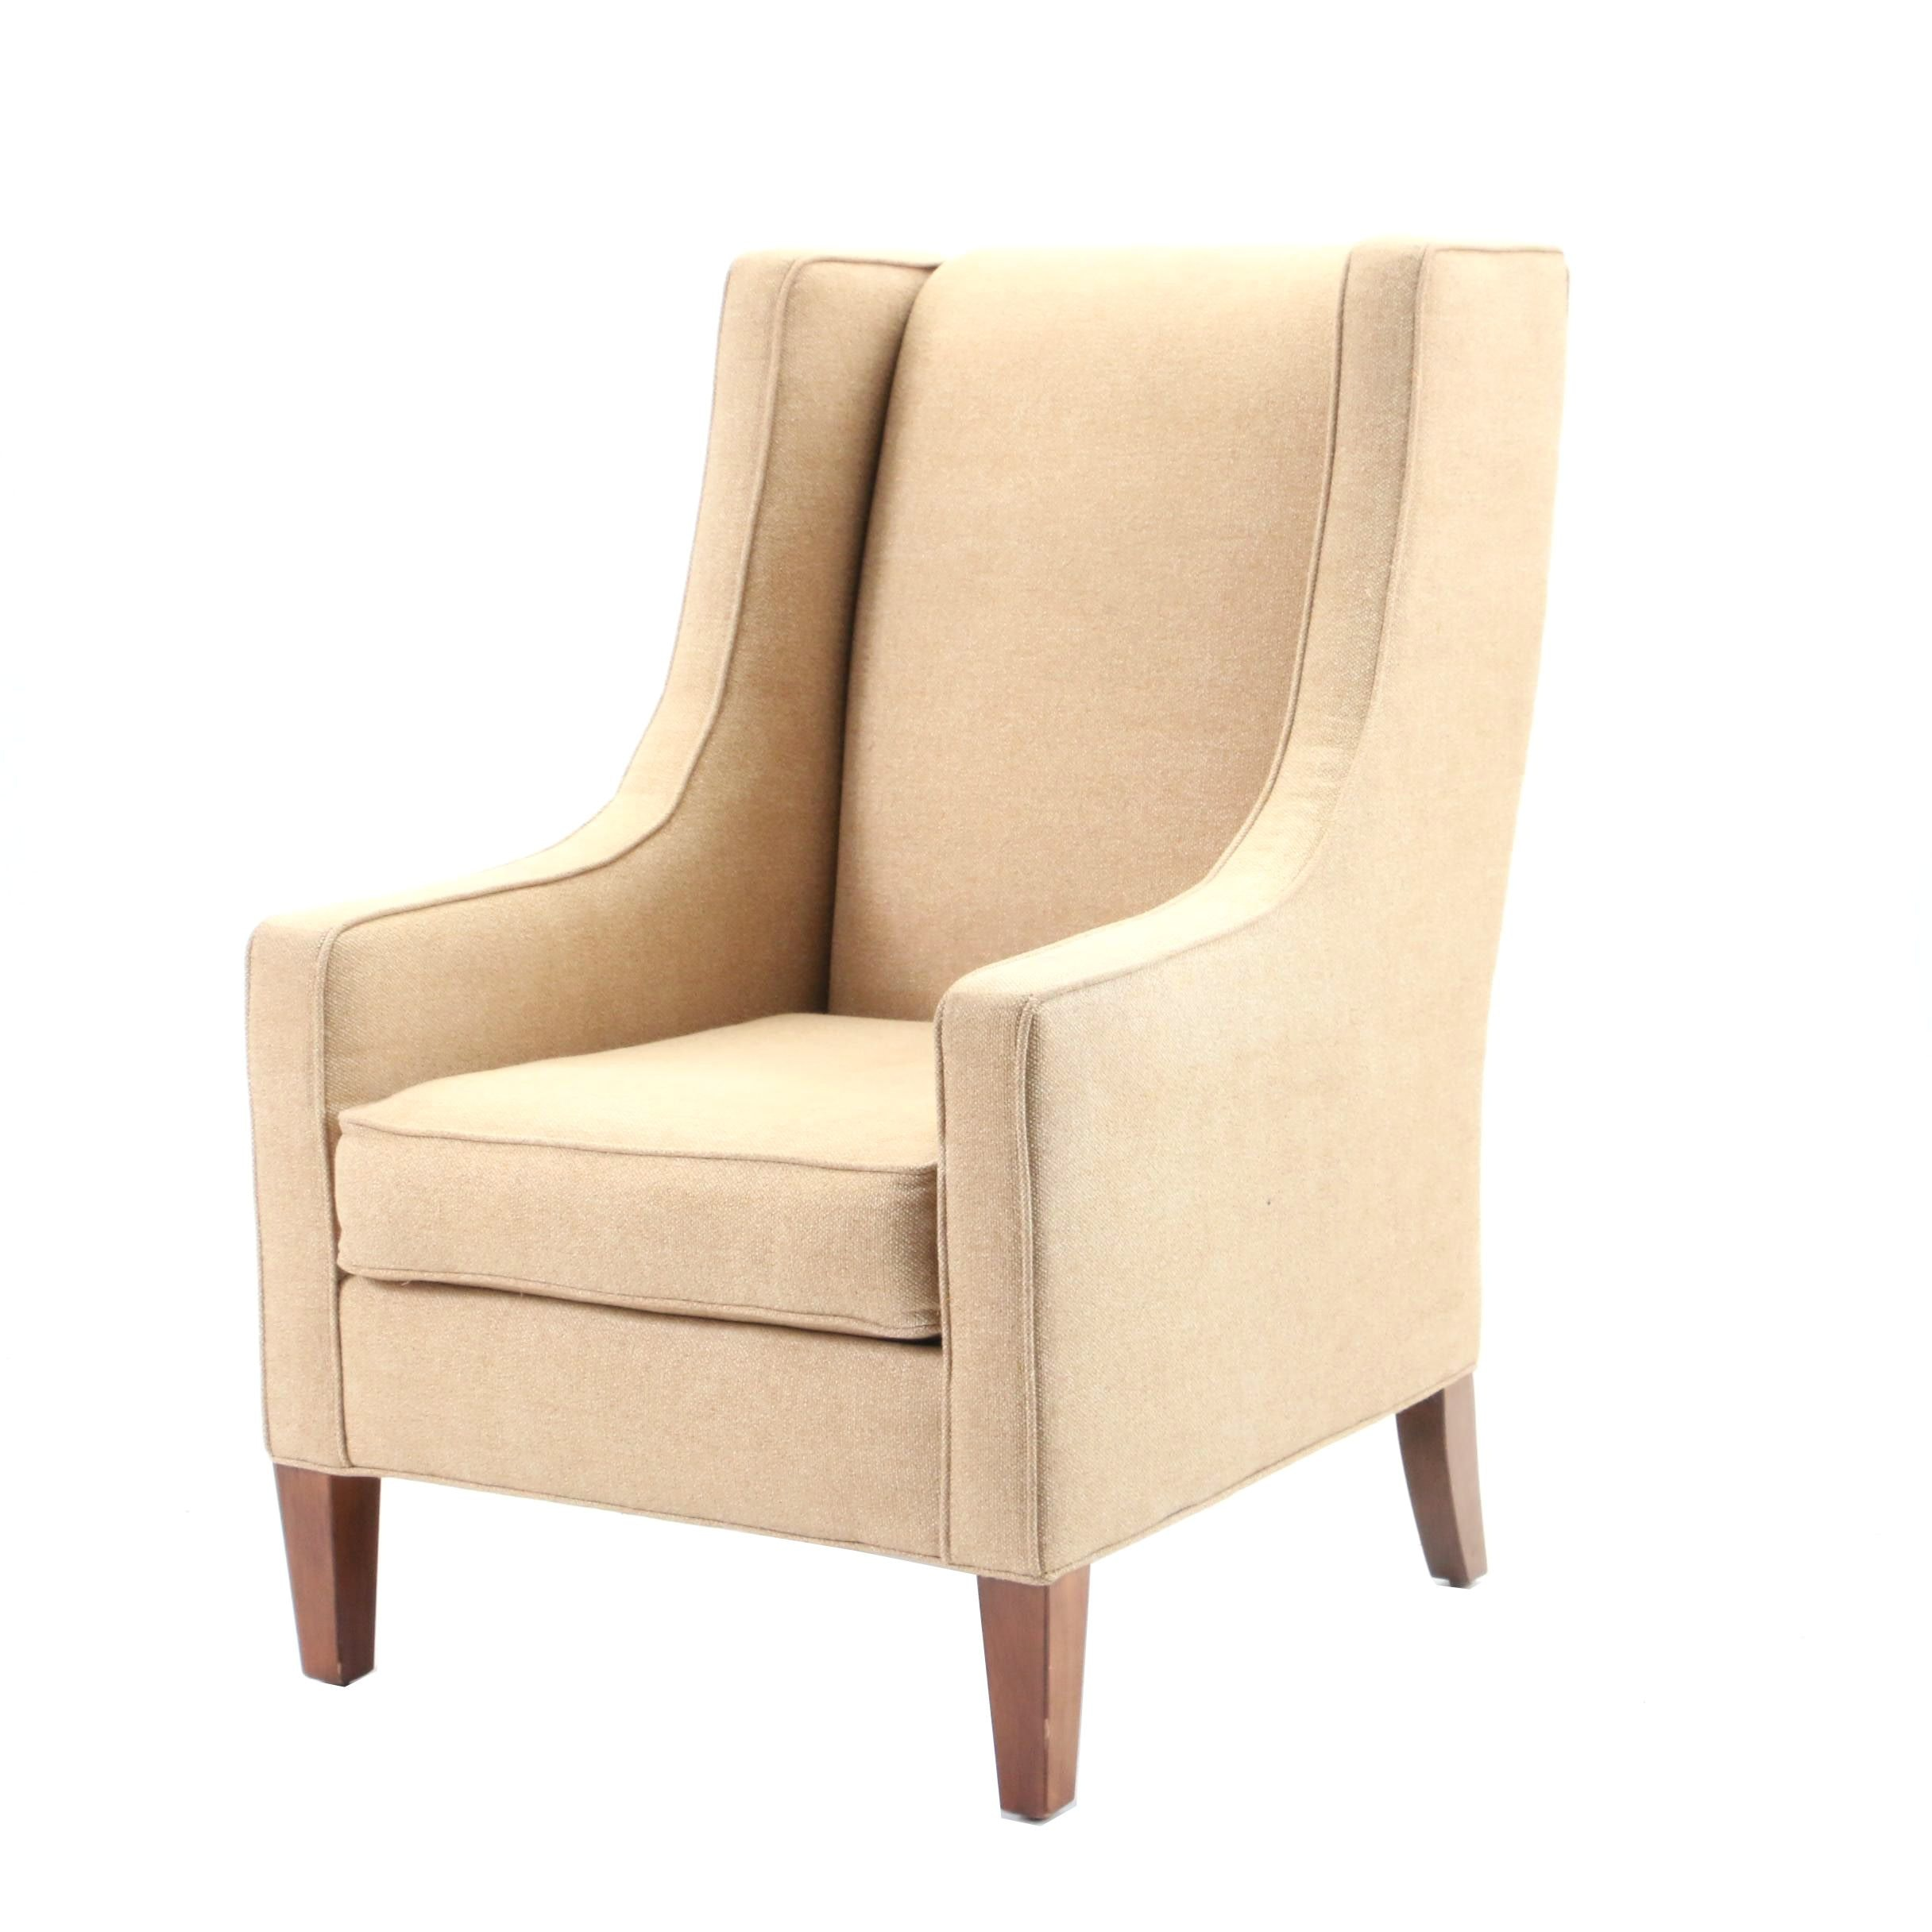 Tan Upholstered Armchair